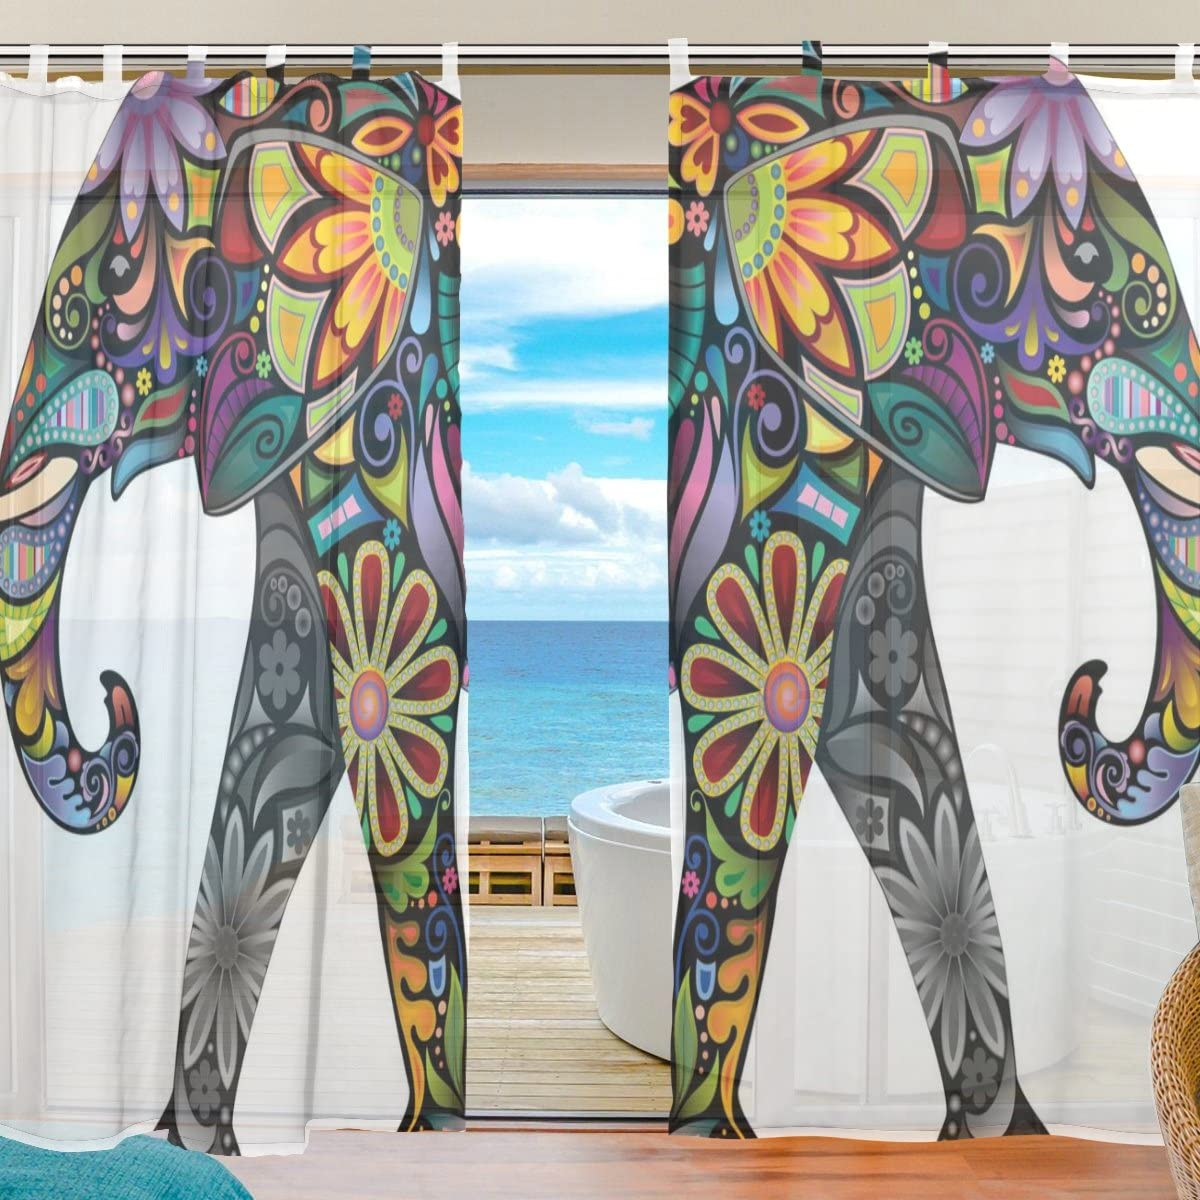 INGBAGS Bedroom Decor Living Room Decorations Elephant Pattern Print Tulle Polyester Door Window Gauze Sheer Curtain Drape Two Panels Set 55×78 inch,Set of 2